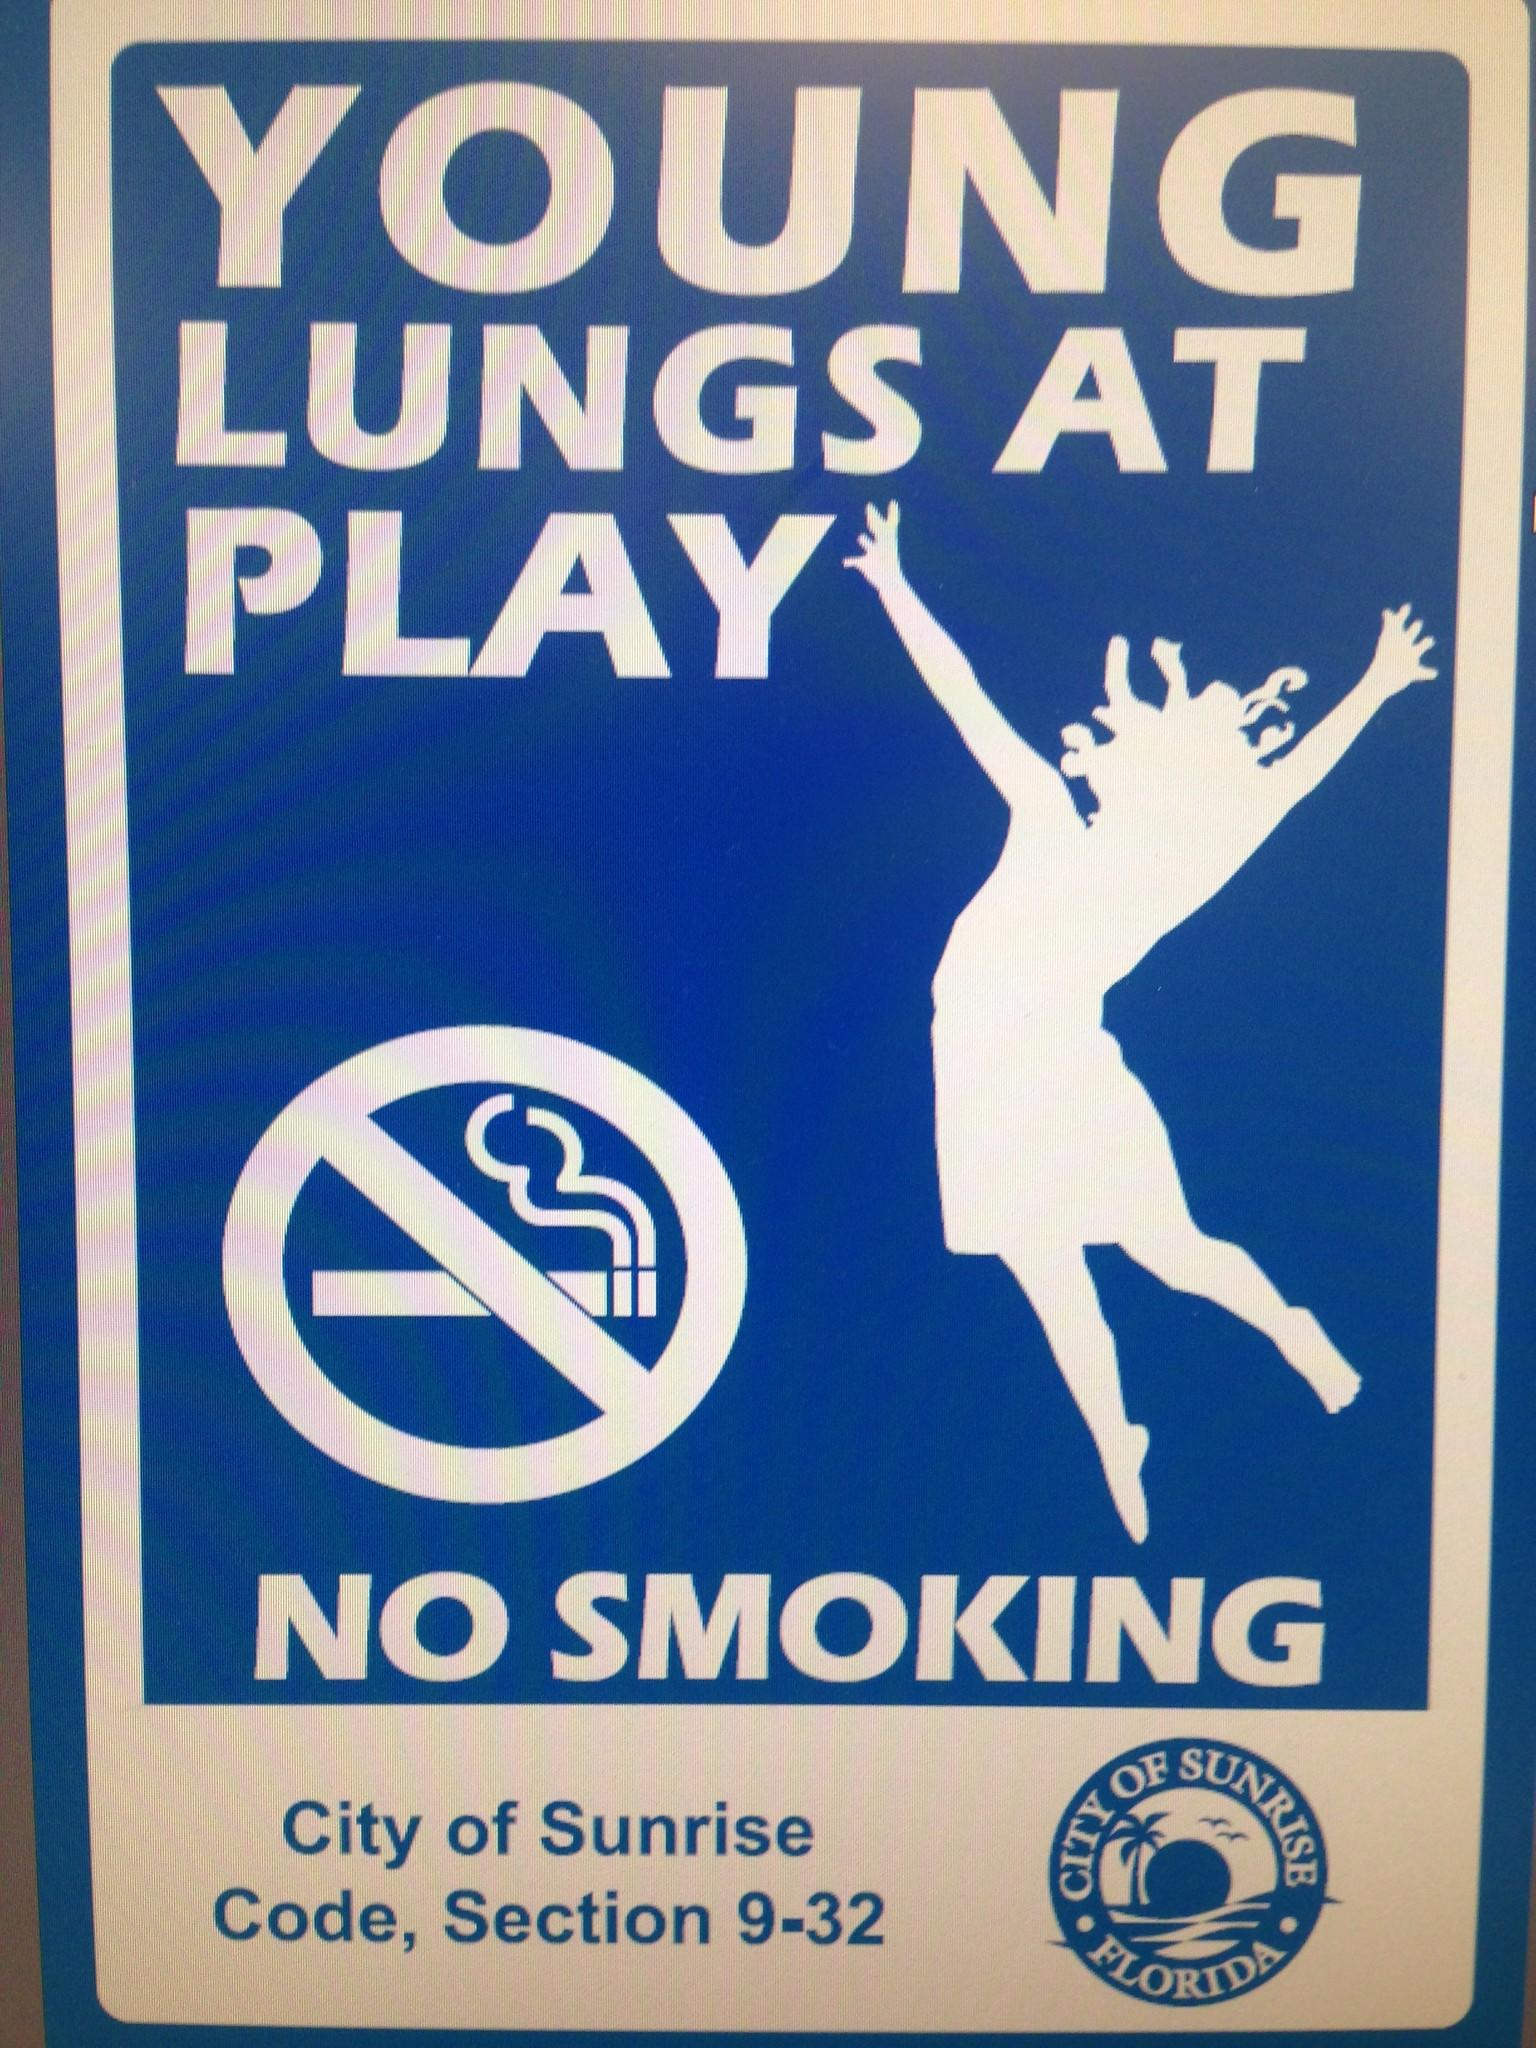 Visitors to city parks in Sunrise will soon see signs like this discouraging smokers from lighting up.